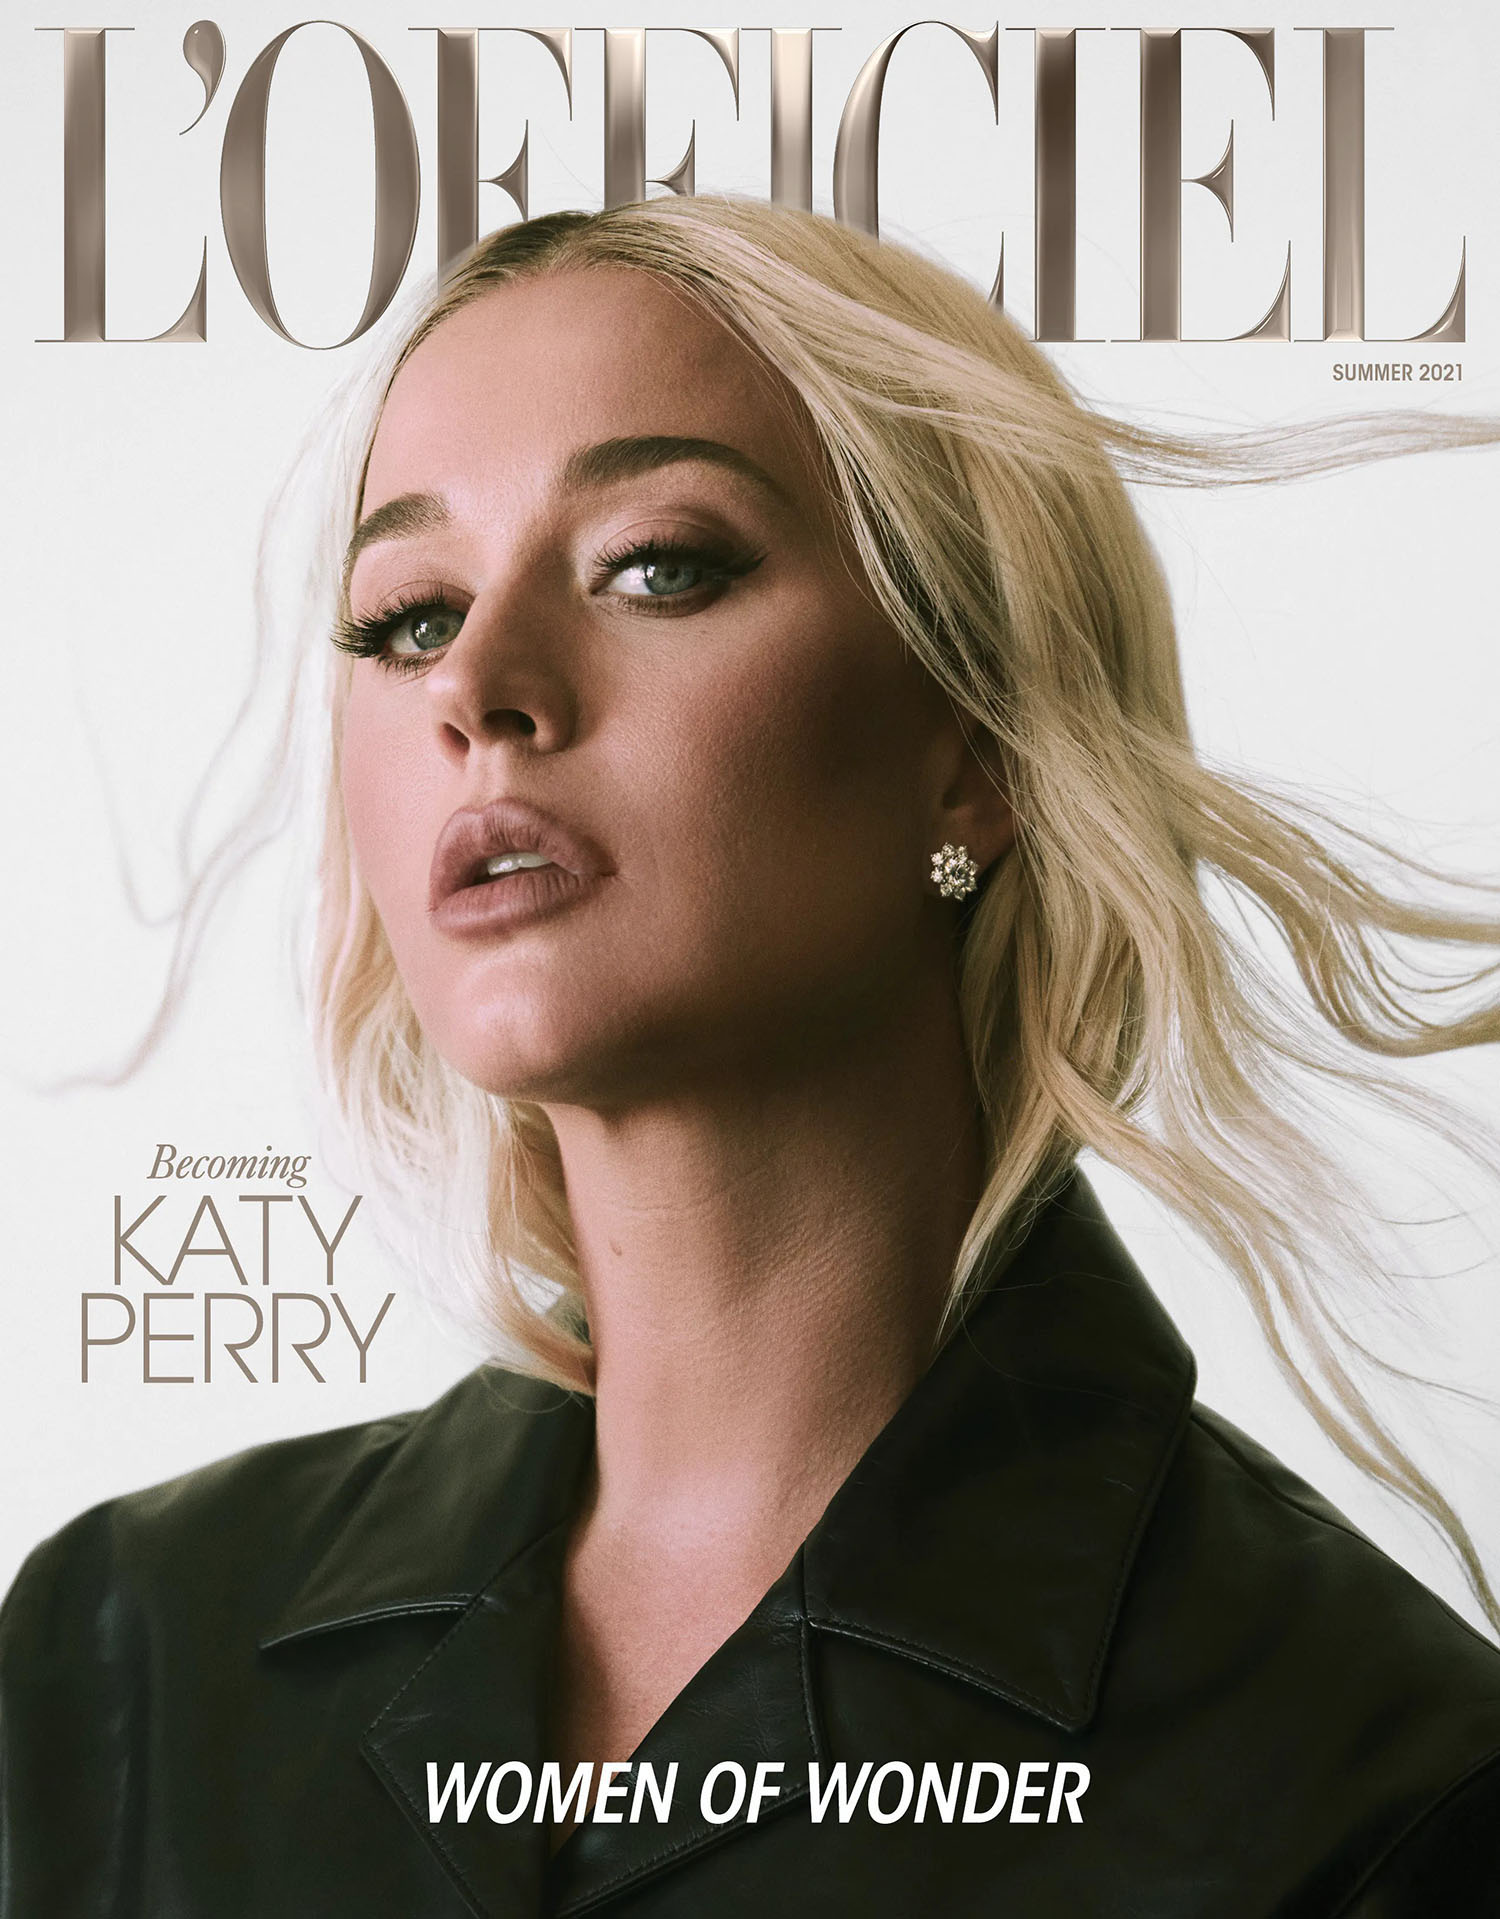 Katy Perry covers L'Officiel Global Summer 2021 by Greg Swales